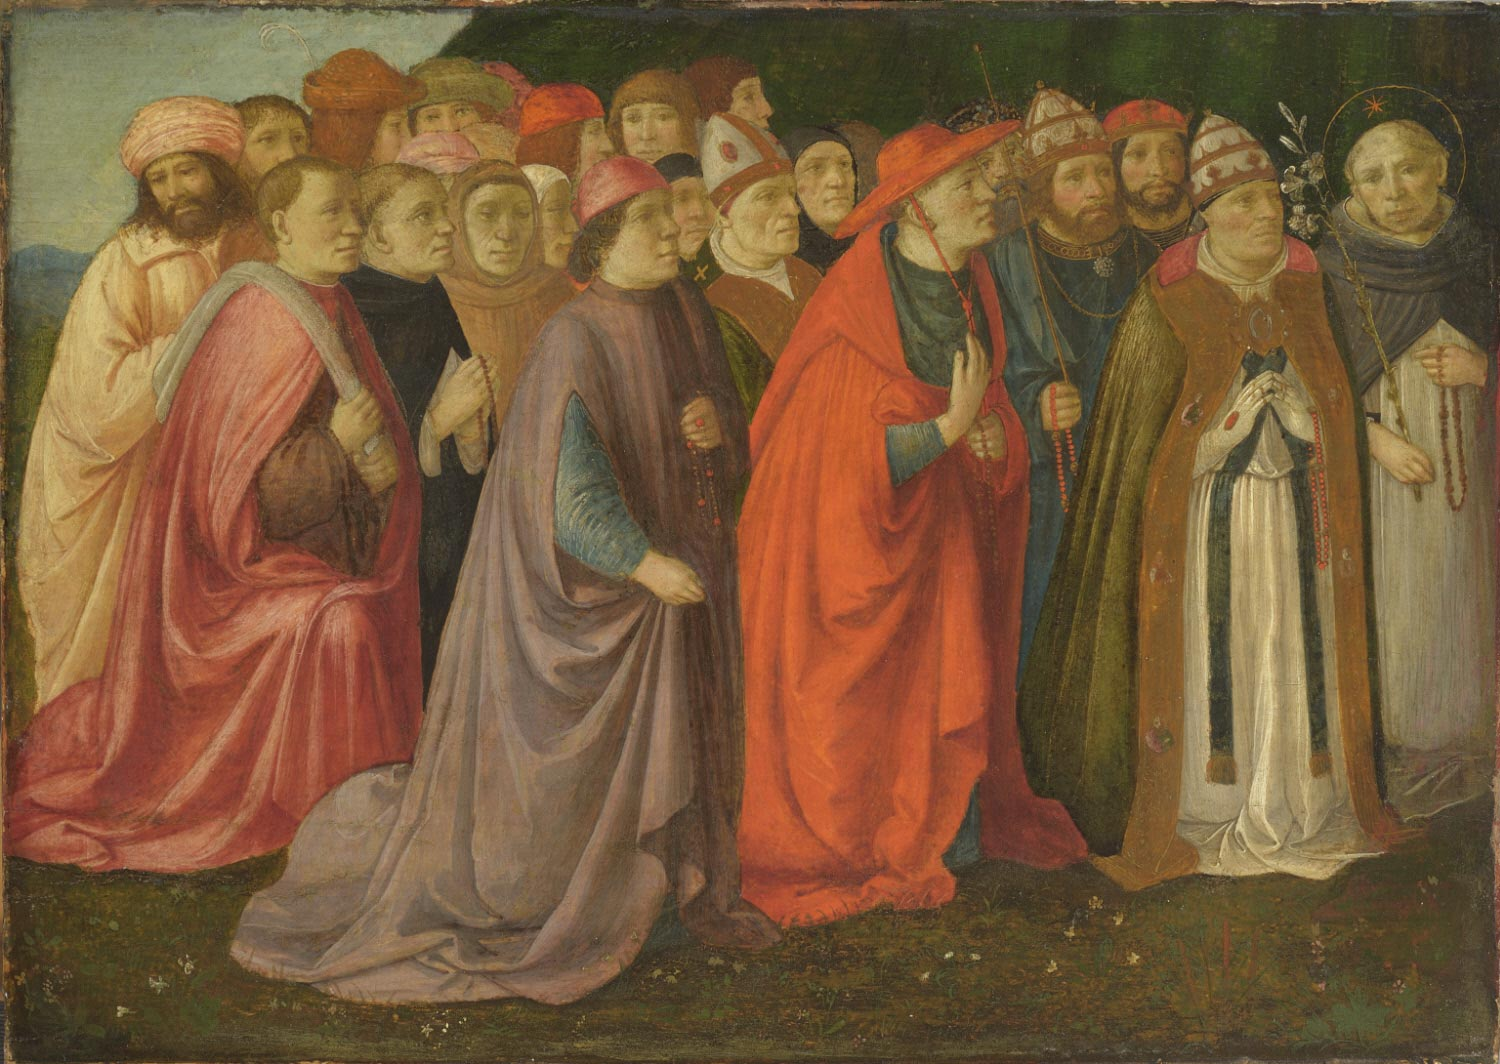 Fragment of a painting showing Men with Rosaries